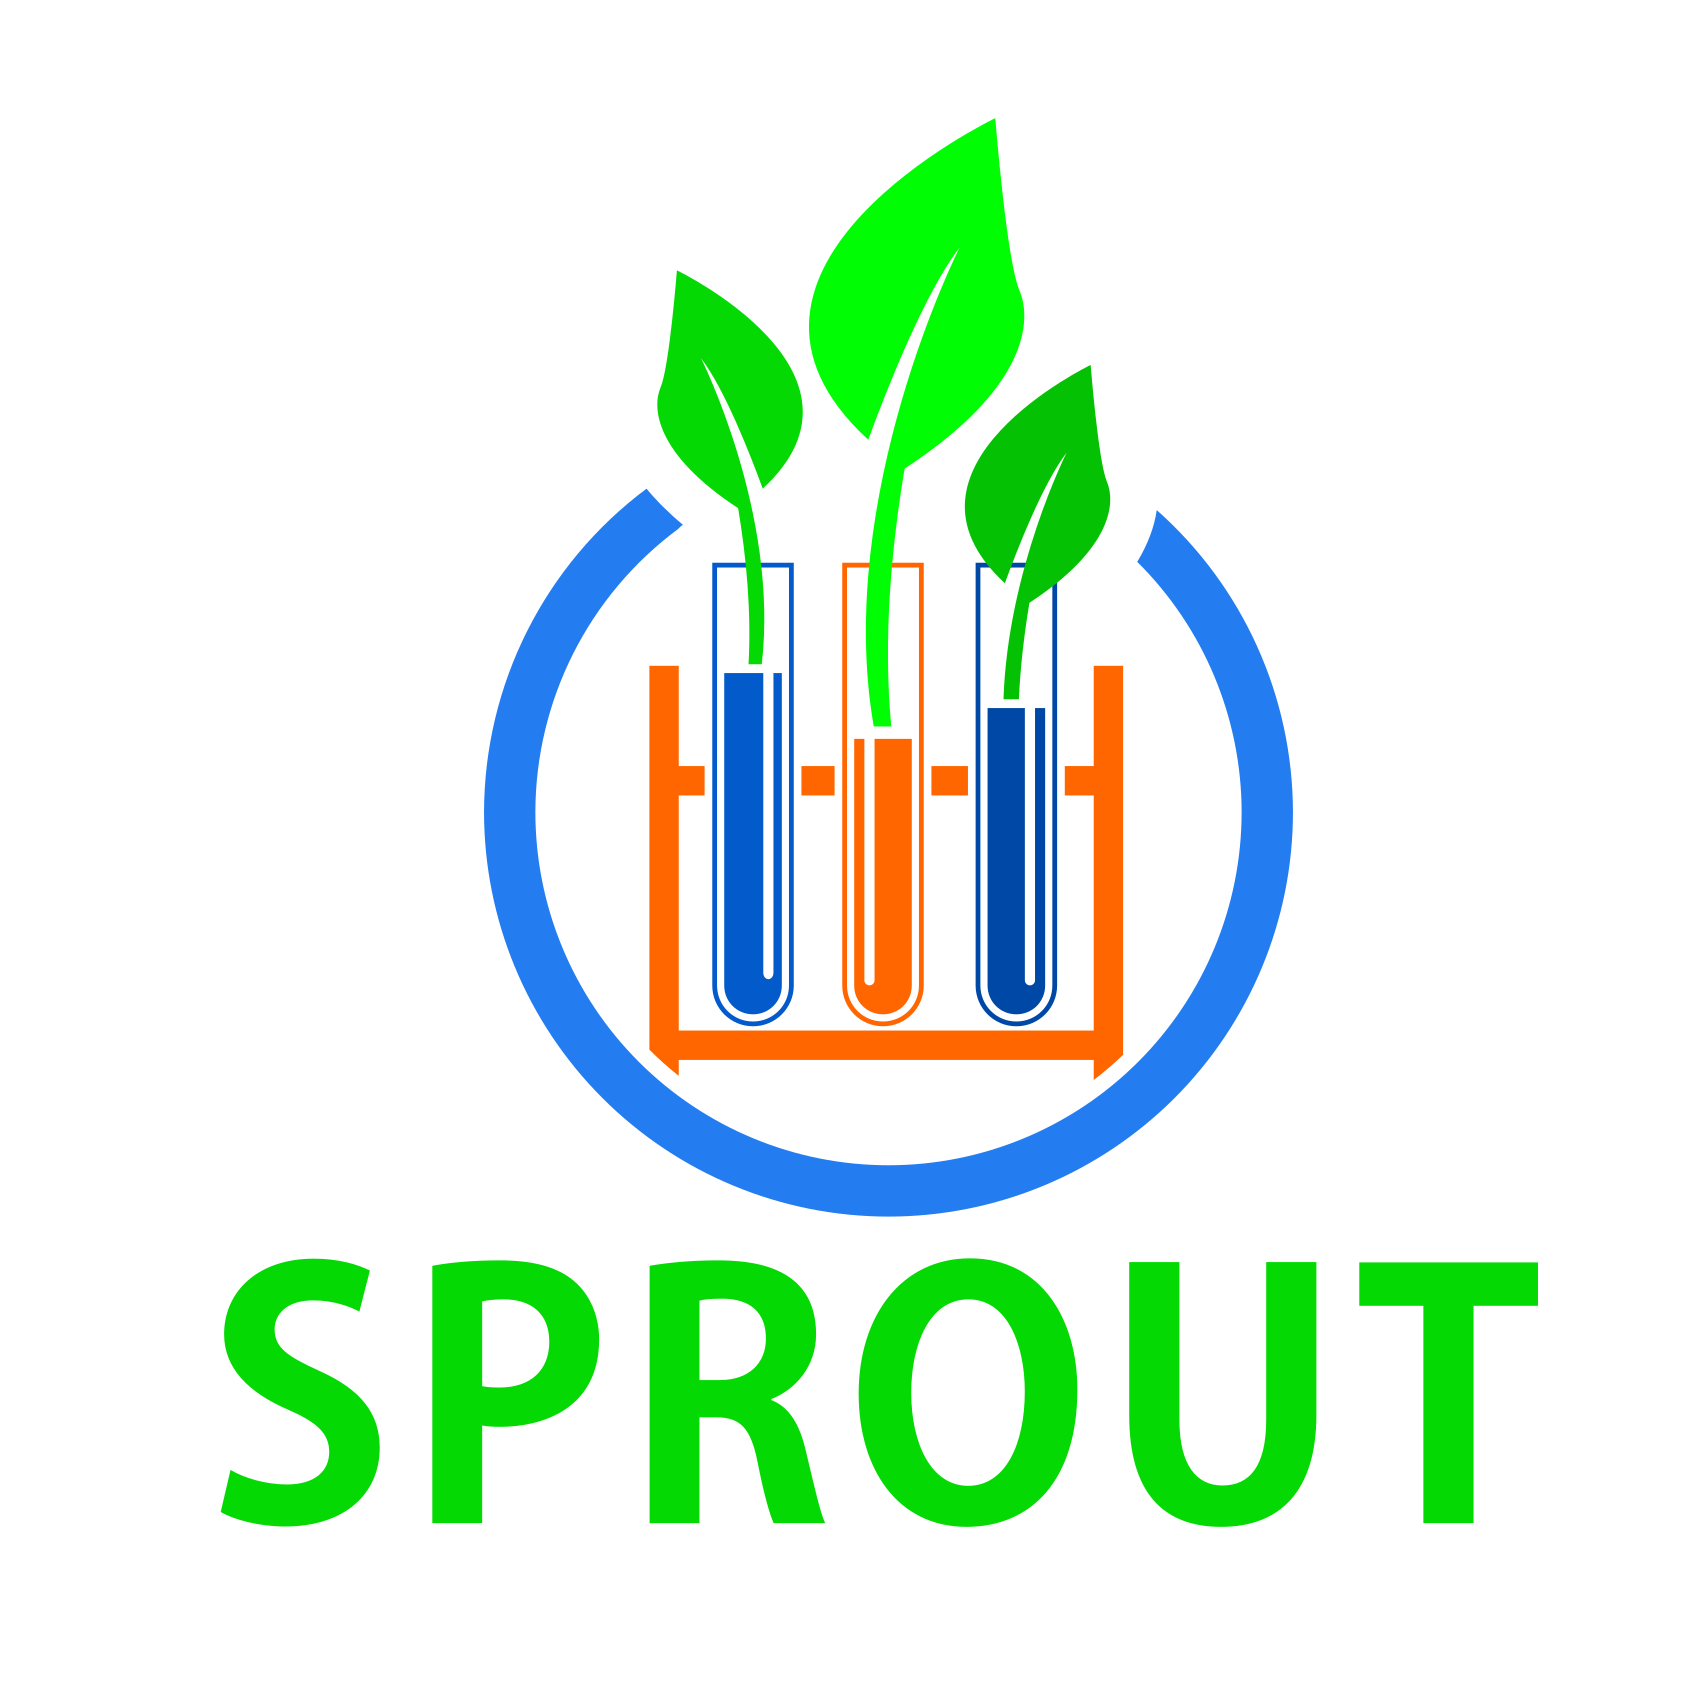 SPROUT grant funding program